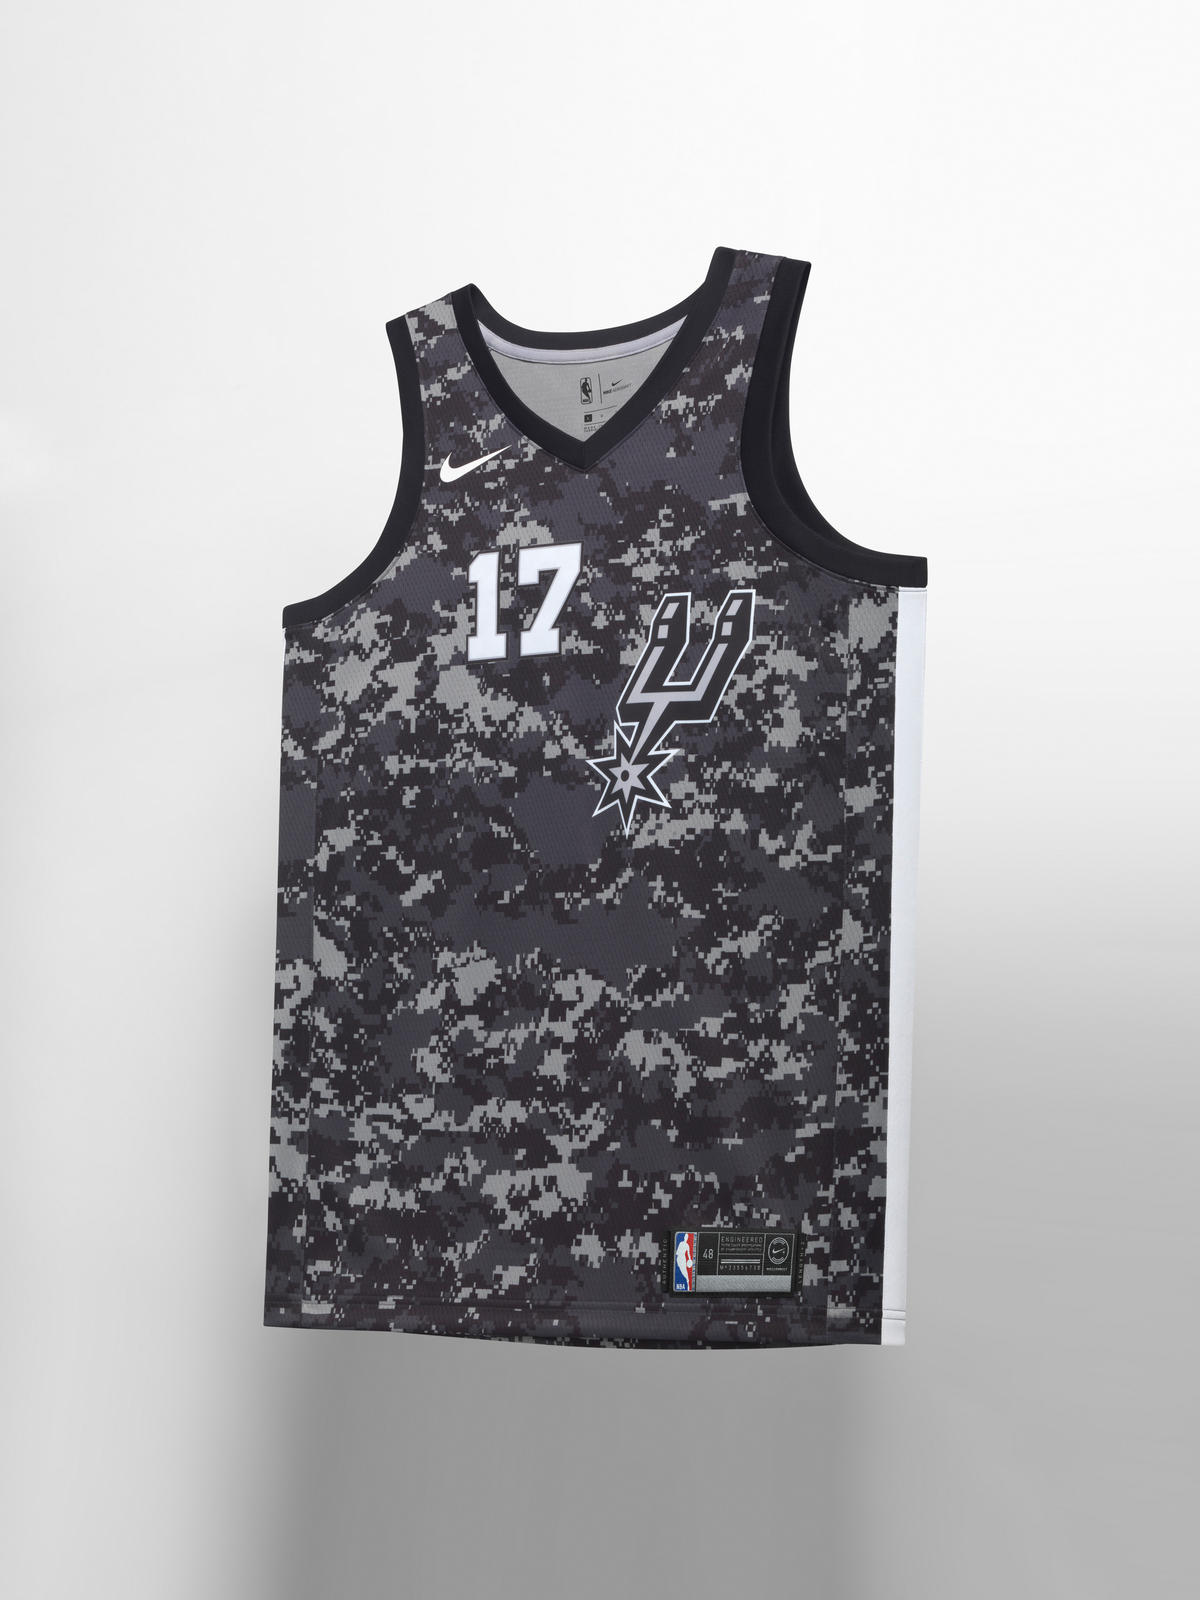 Nike NBA City Edition Uniform 39